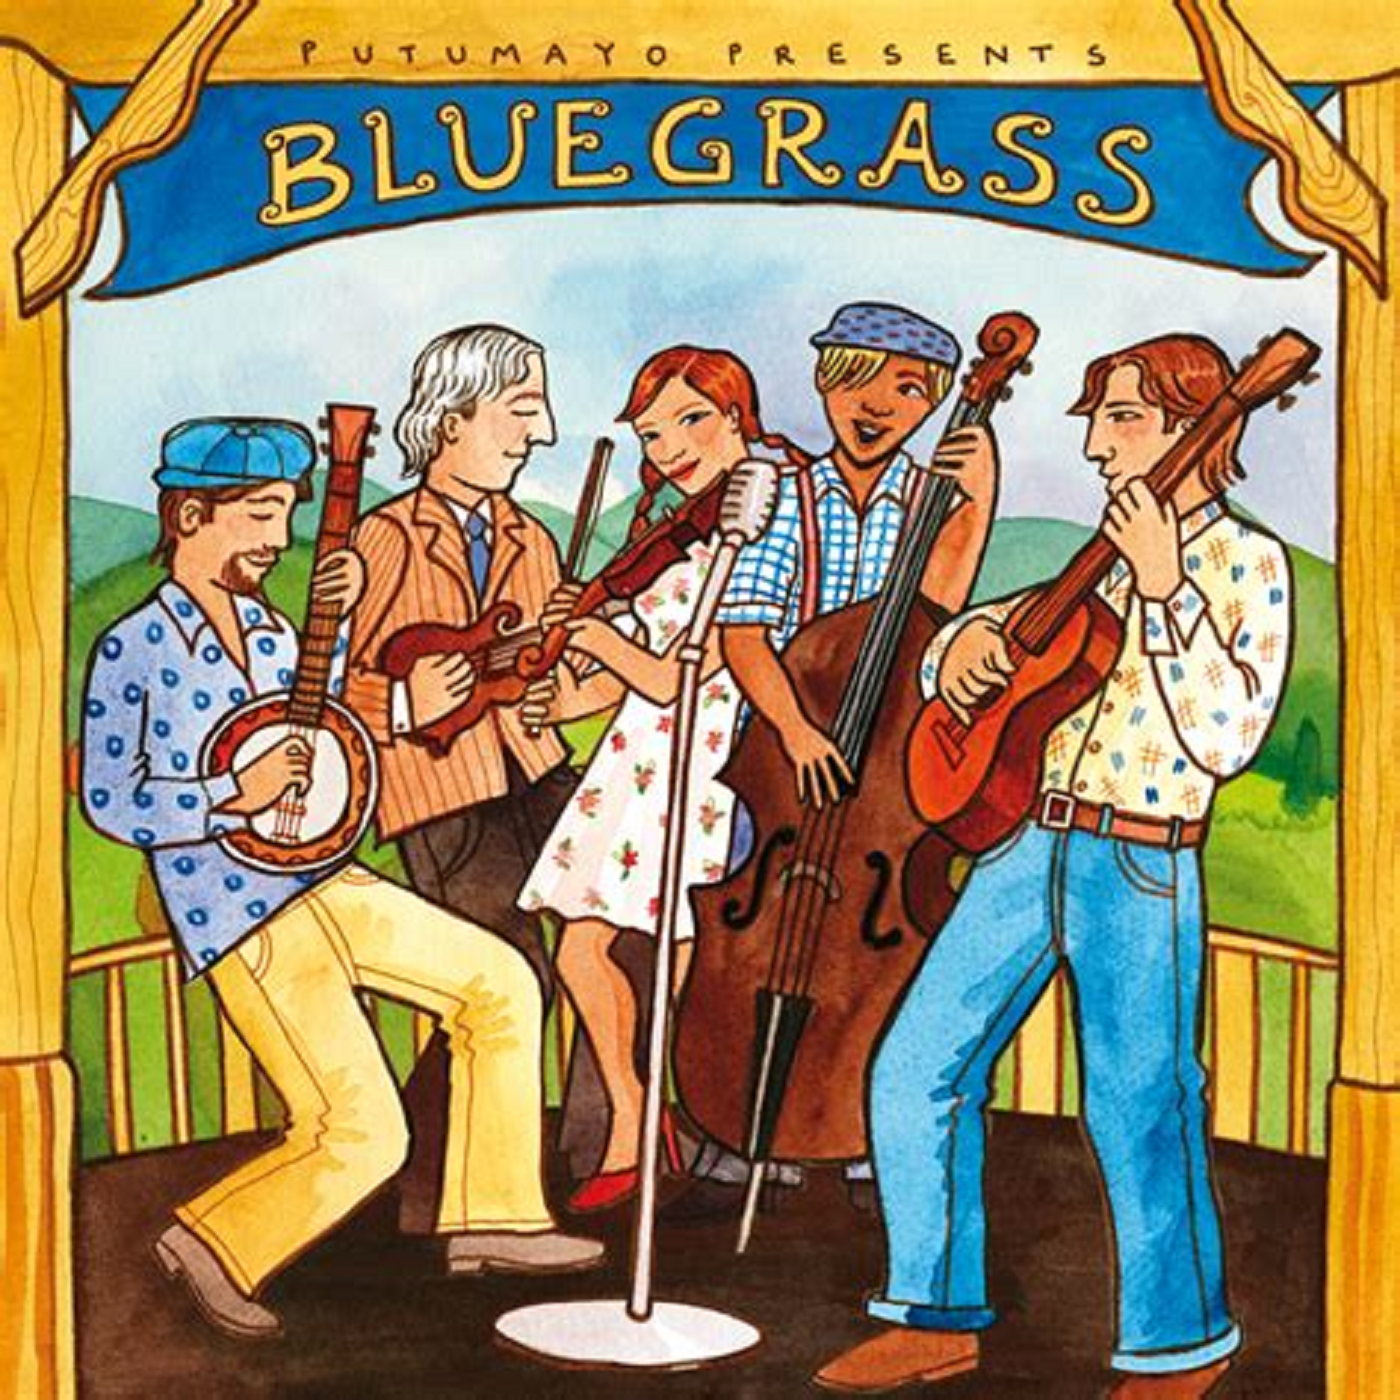 Best of Bluegrass with Trevor Ruffell-15-02-2019